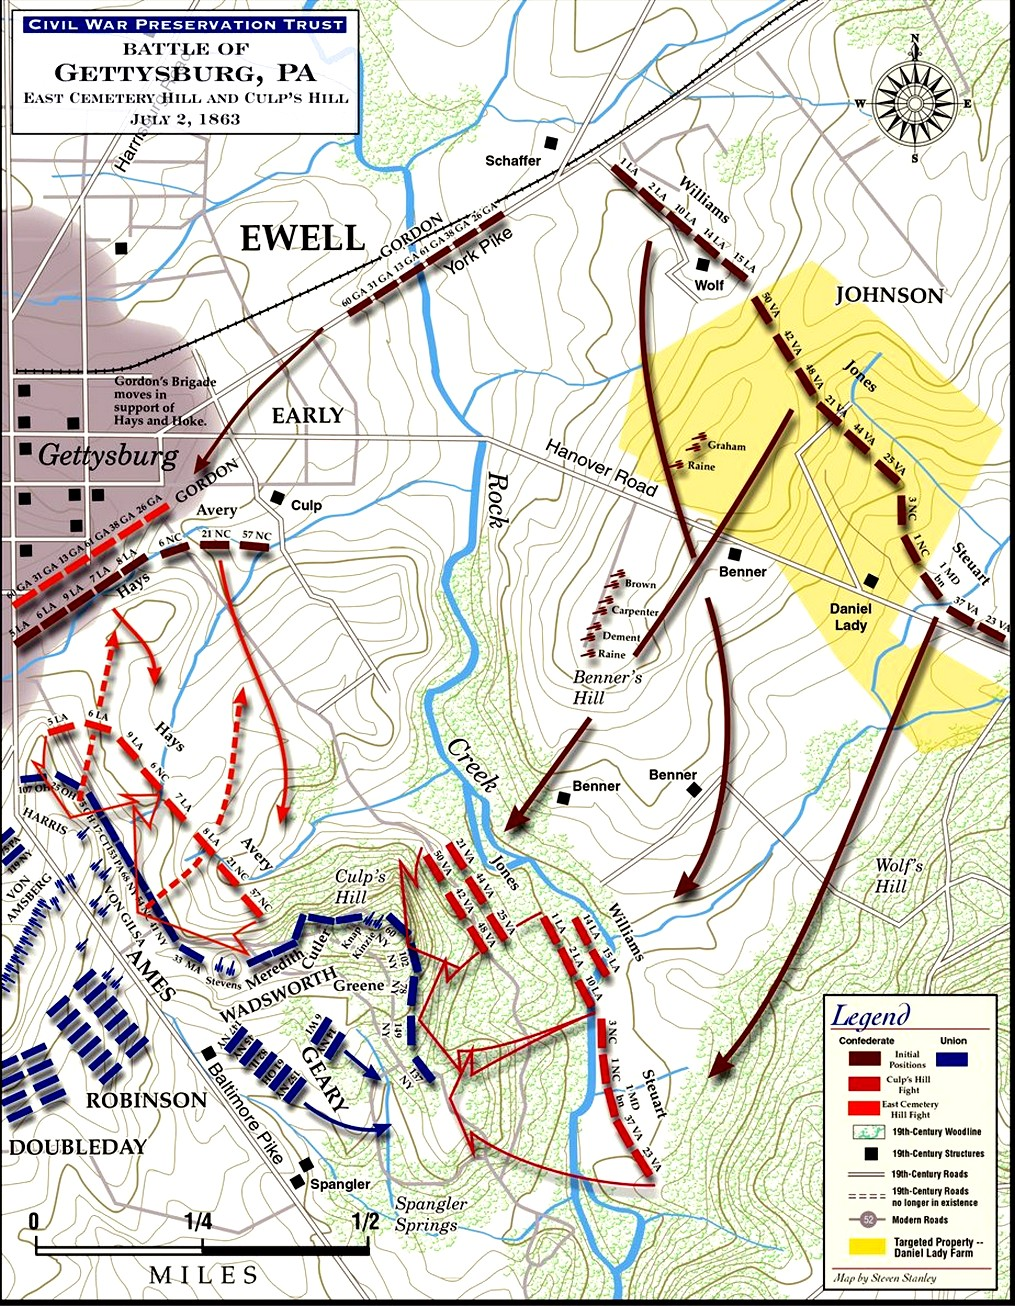 East Cemetery and Culp's Hill Battlefield Map.jpg